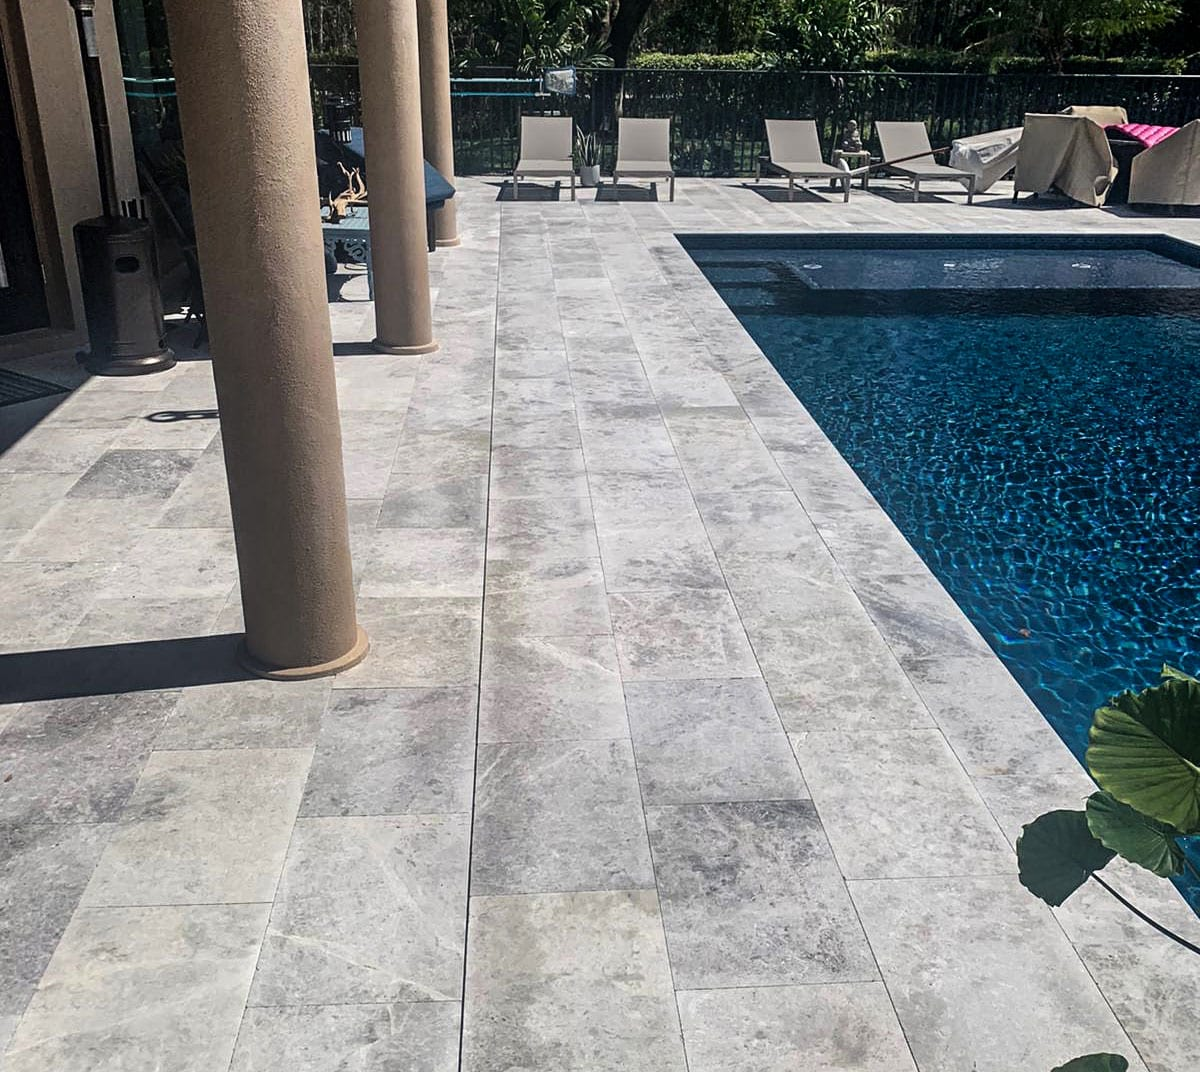 Stoneline-Group-Tundra-Grey-Marble-Collection-Marble-Leathered-Paver-French-Pattern-Pool-deck-walk-way-backyards-marble-design-Pictures